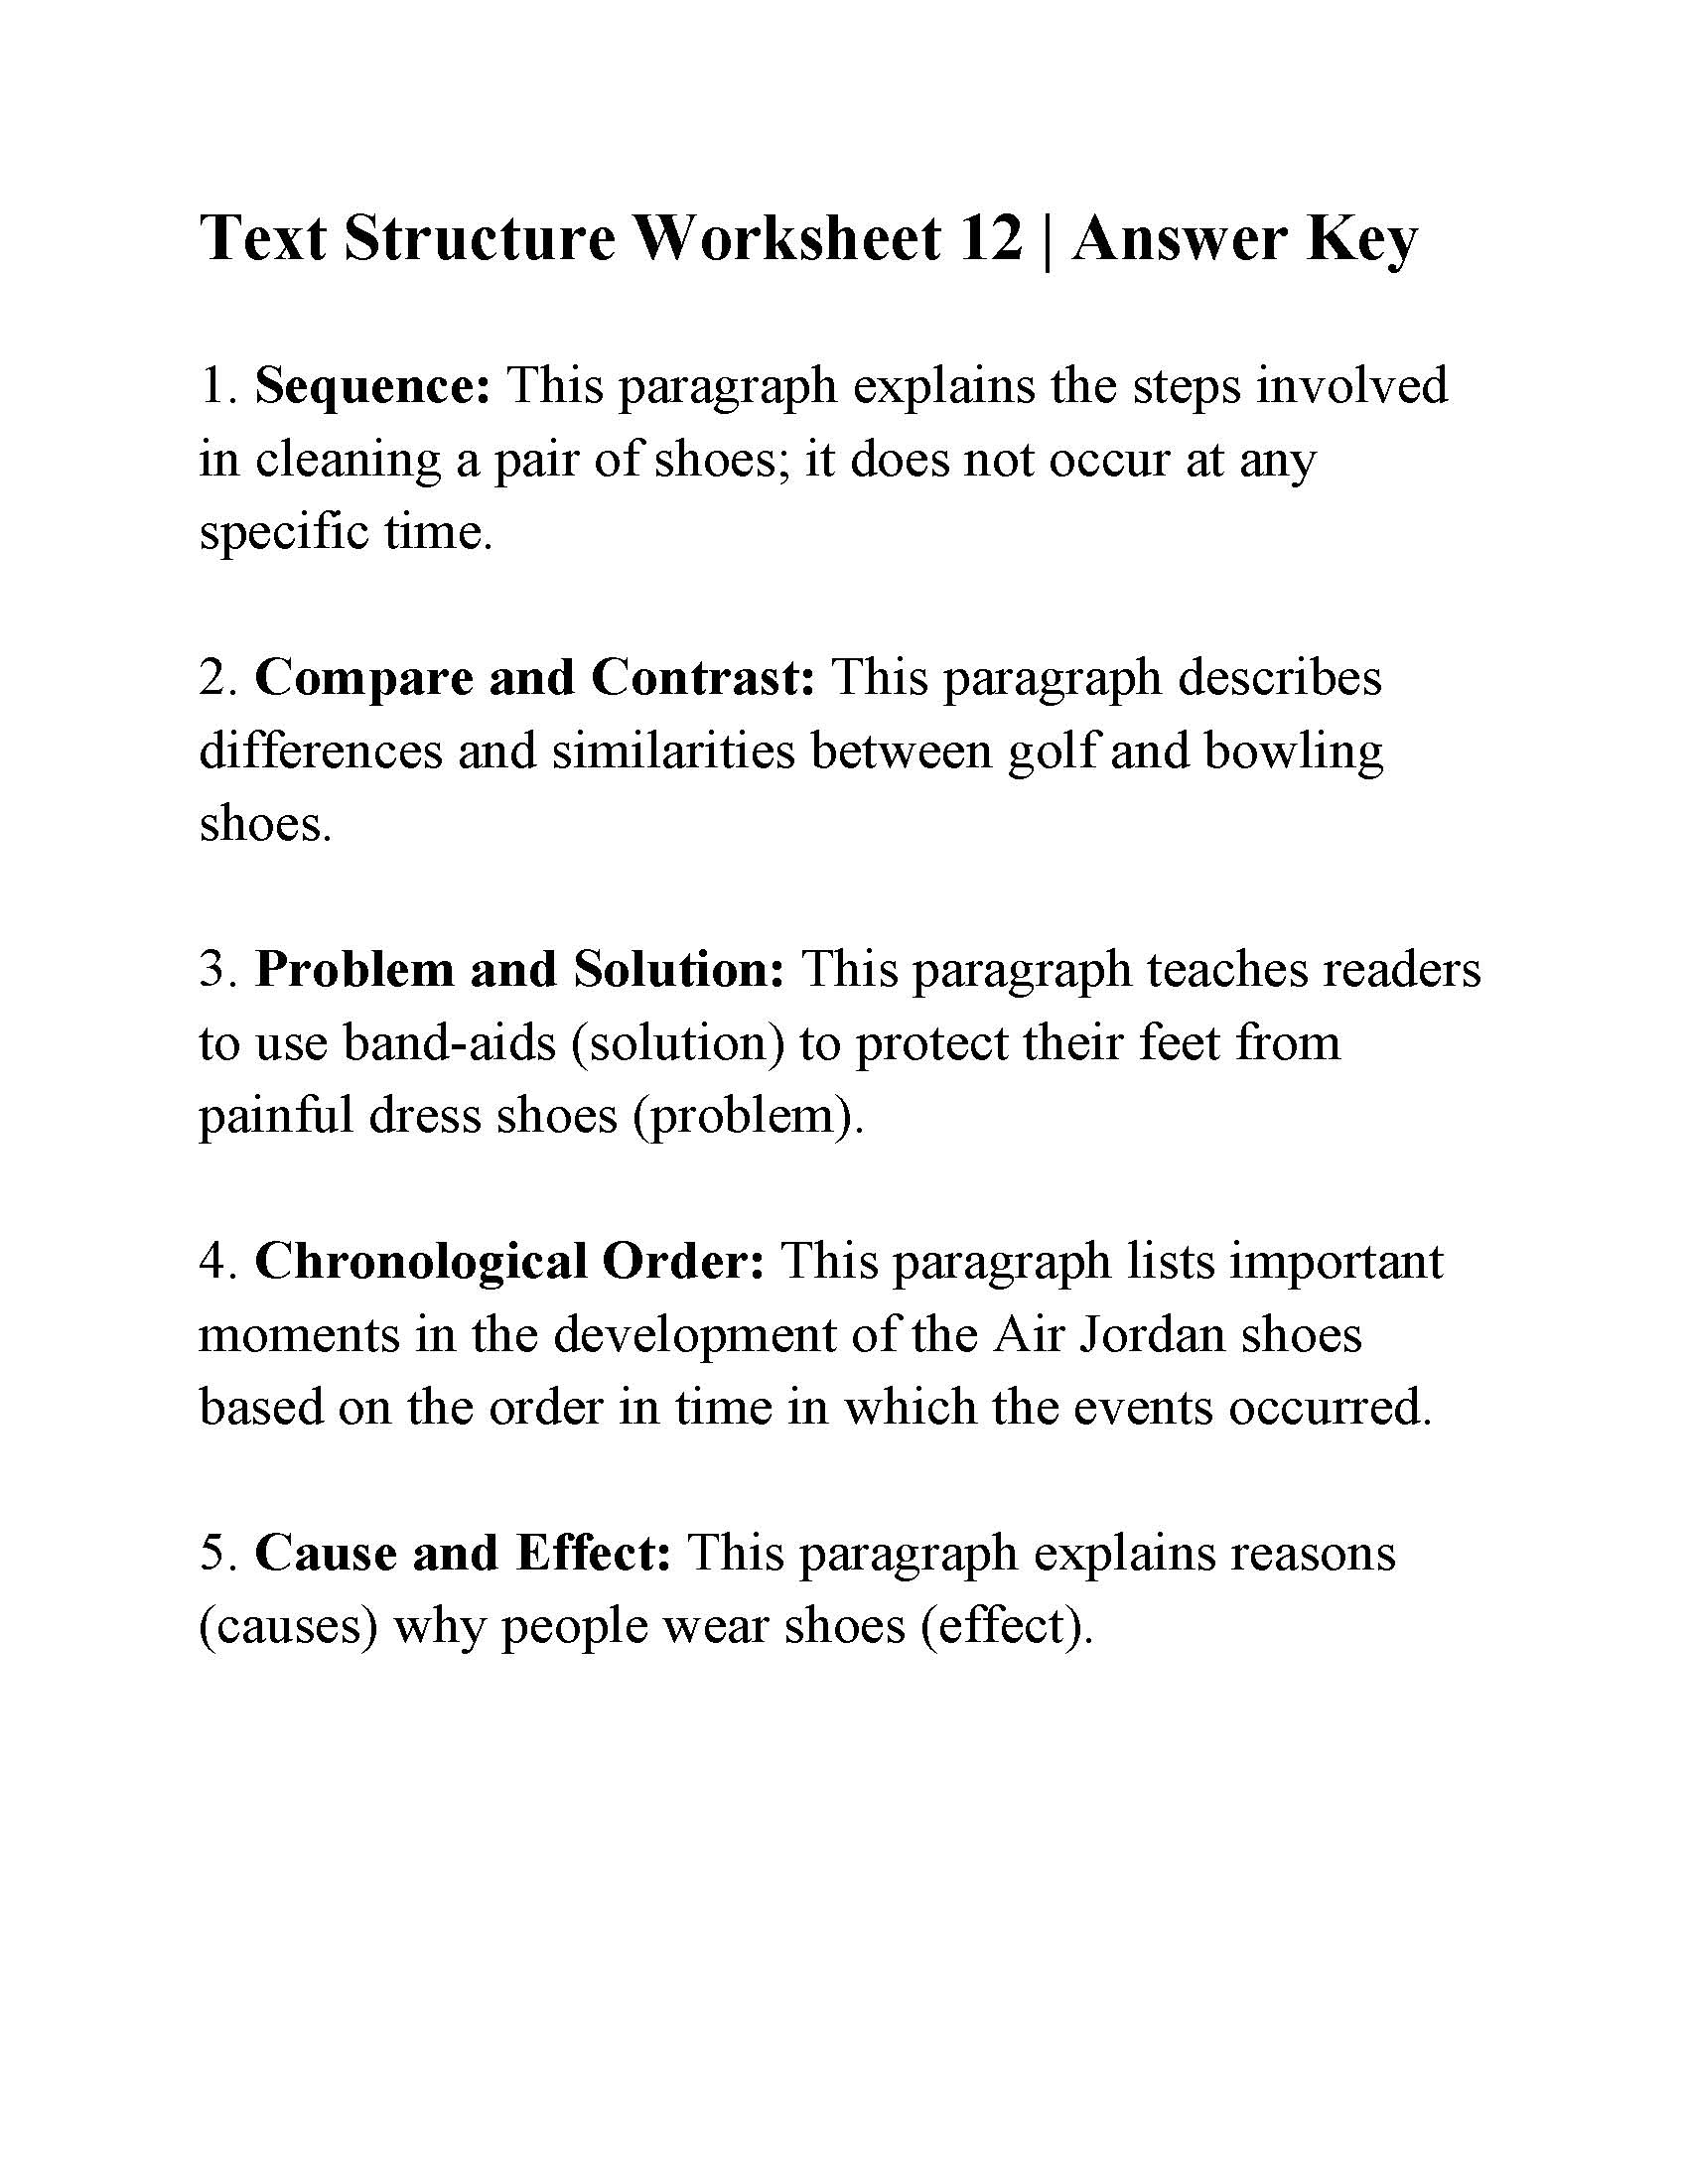 Text Structure Worksheet 12